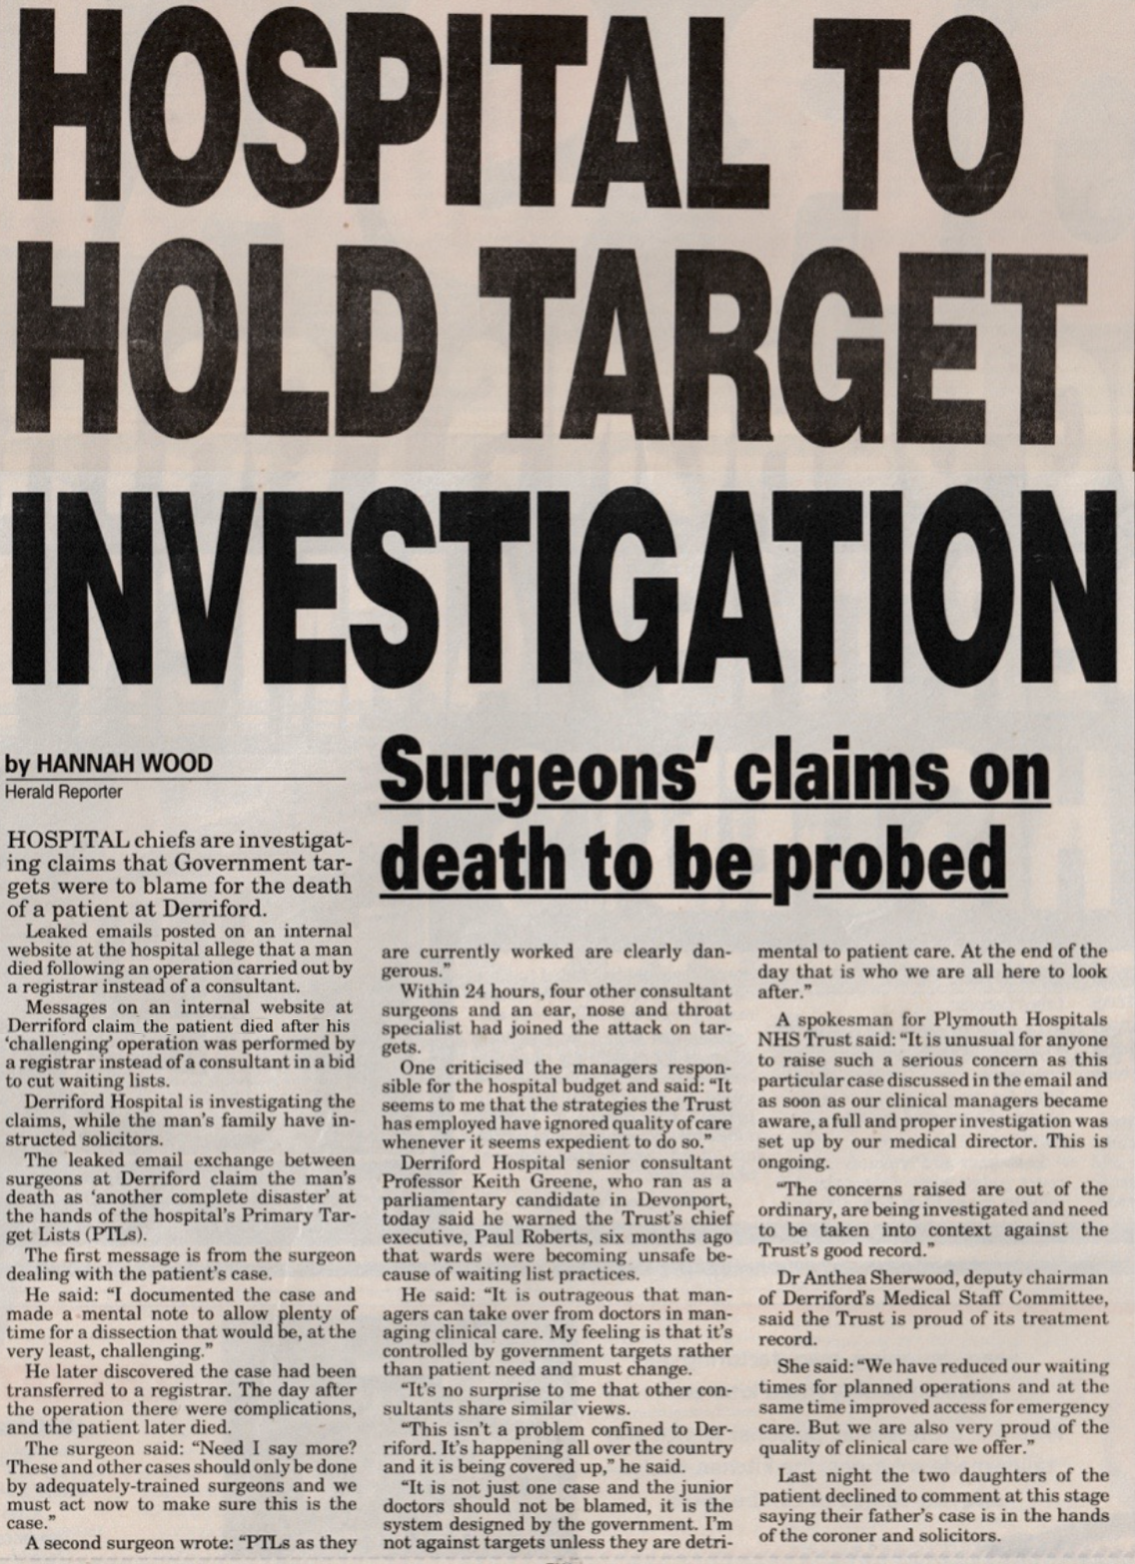 Leaked emails blame government targets for death of patient after surgery.